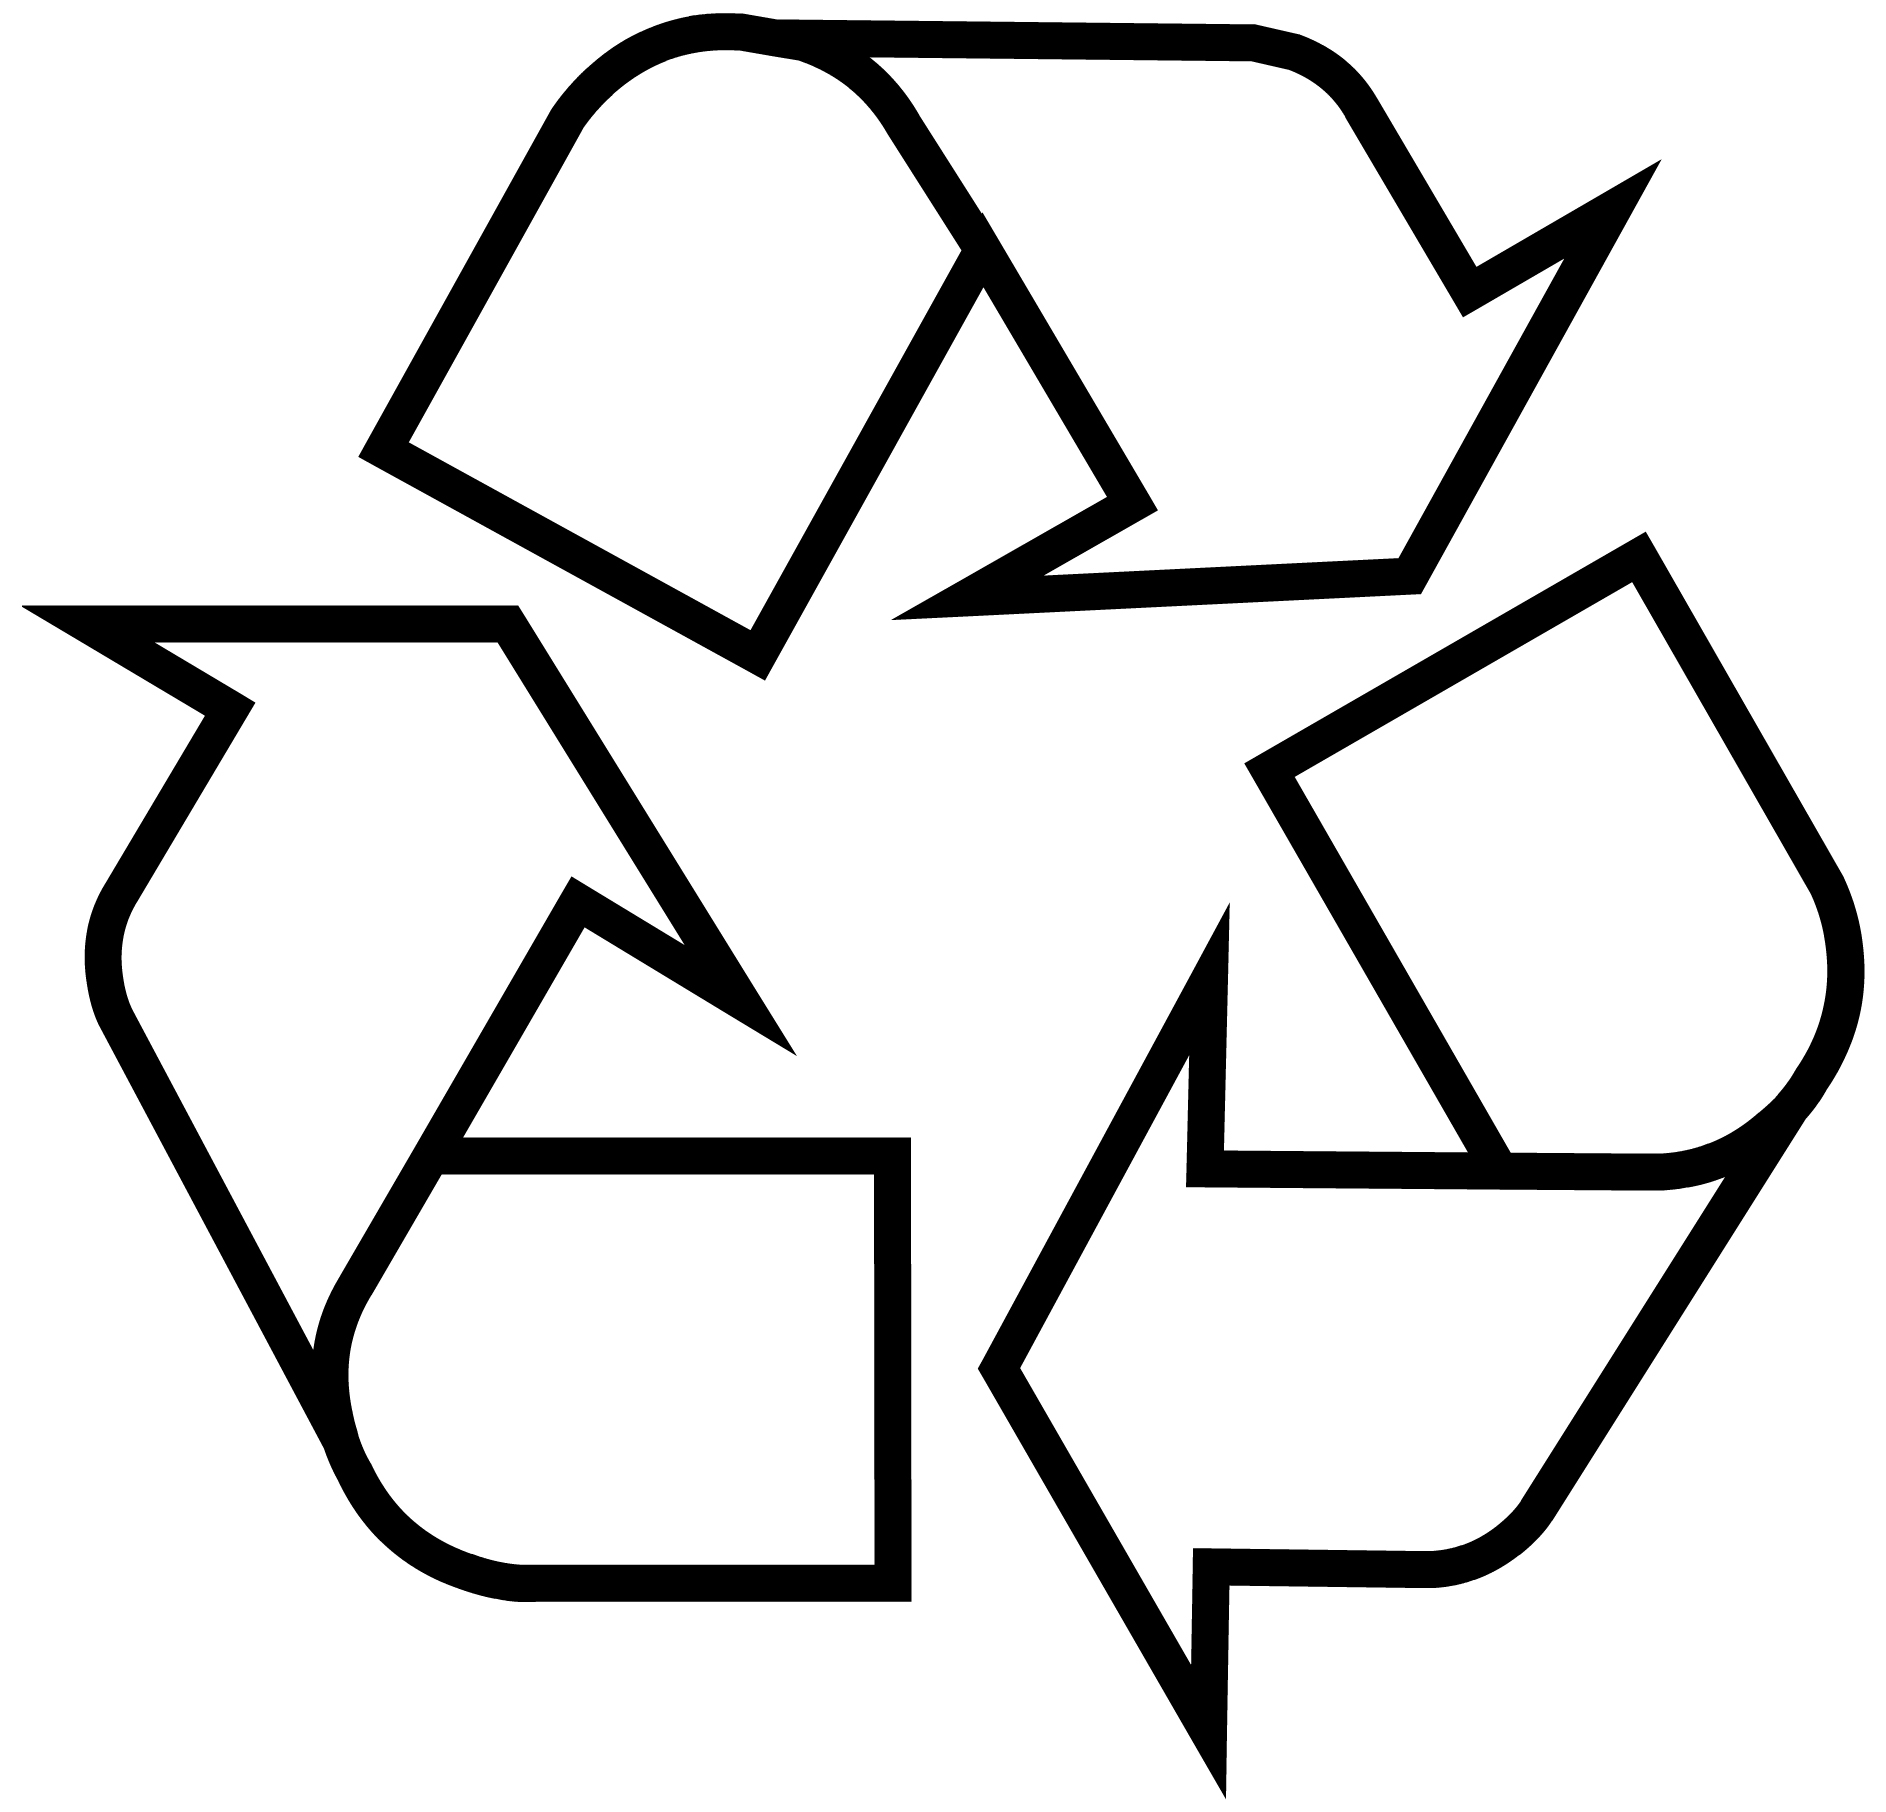 Made with recycled materials clipart black and white black and white Recycling Symbol - Download the Original Recycle Logo black and white